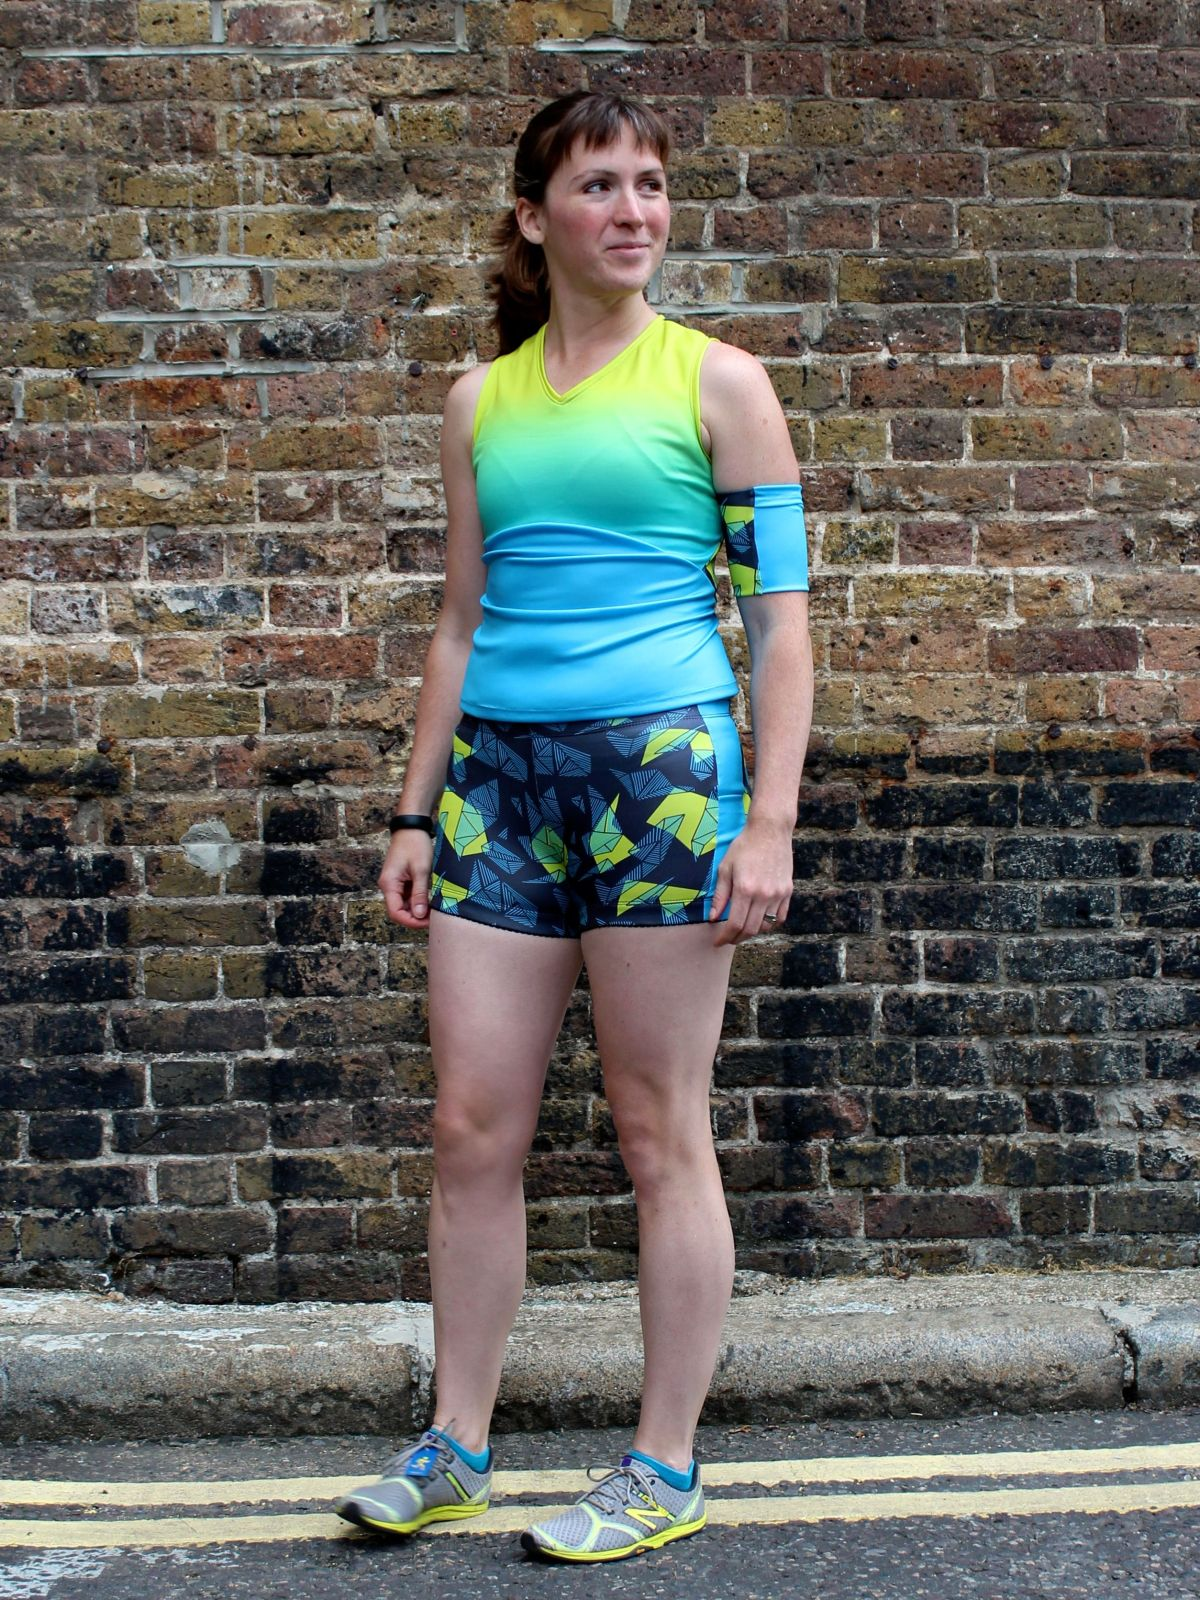 Melissa is standing in front of a brick wall and is wearing a sleeveless ombre activewear top, shorts with angular shapes on the fabric, and a matching device armband.